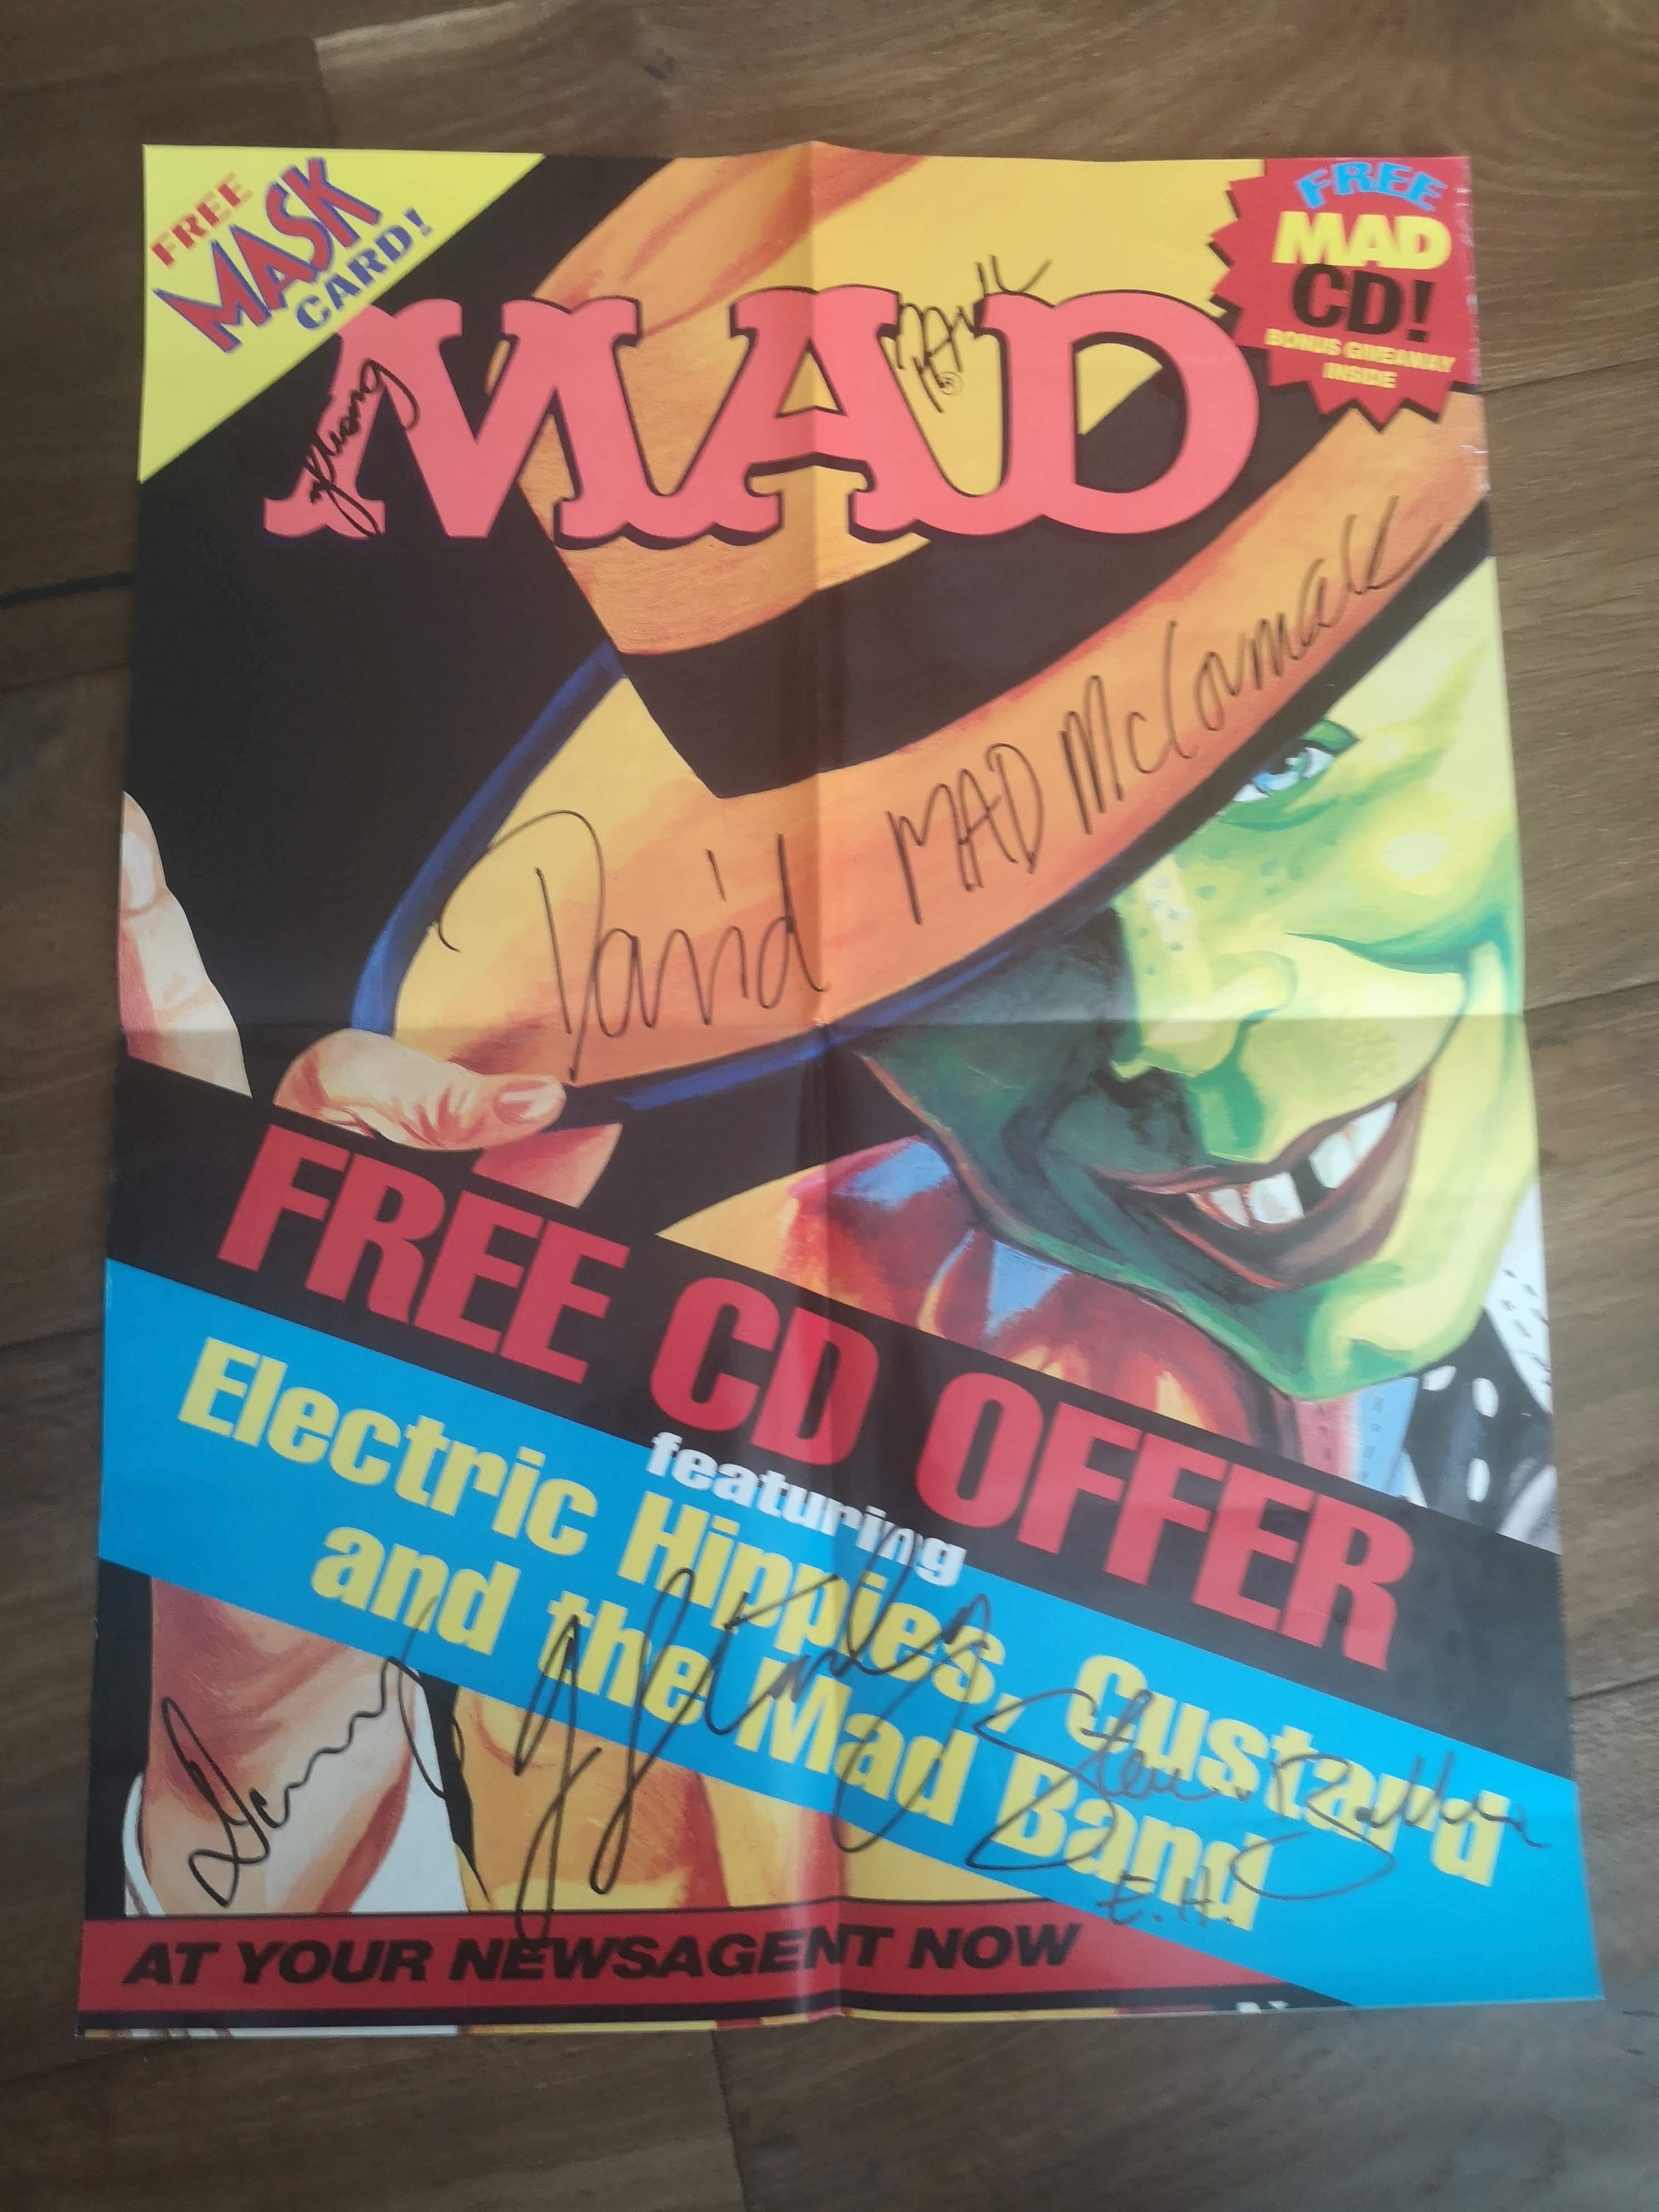 Signed MAD Promotional Poster 'Electric Hippies, Custard and the MAD band' • Australia